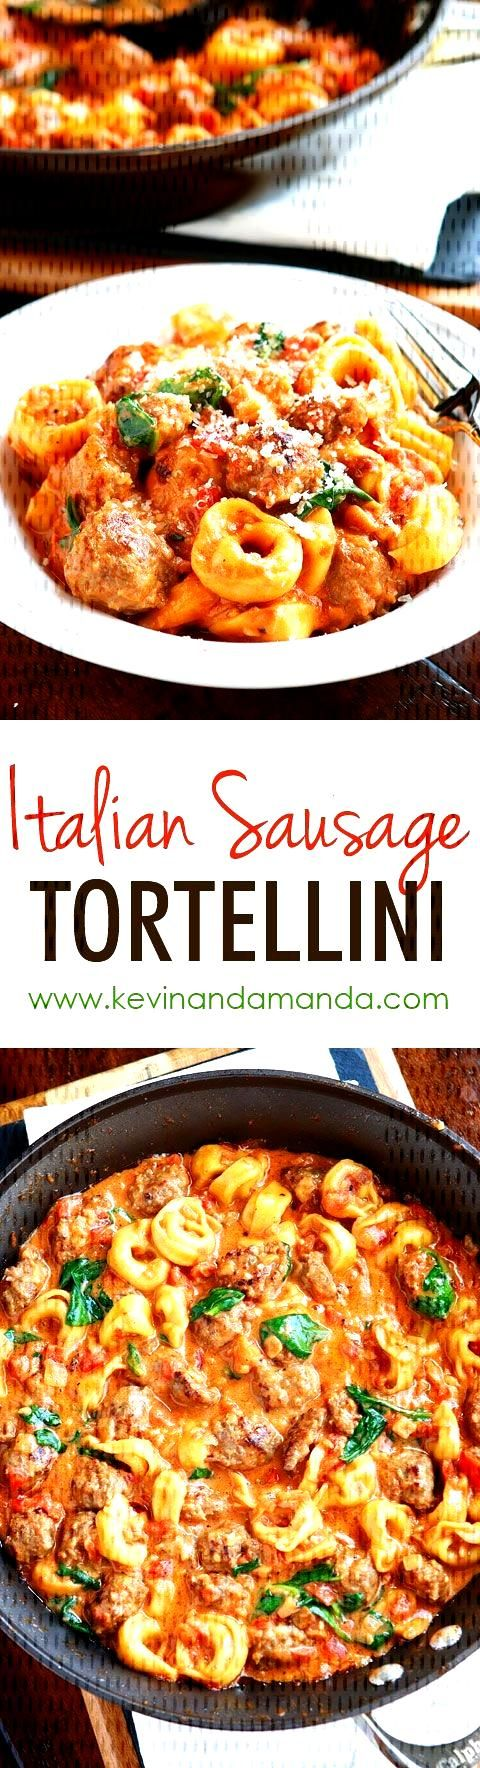 This Italian Sausage Tortellini is made with cheese tortellini and fresh Italian sausage in a homem